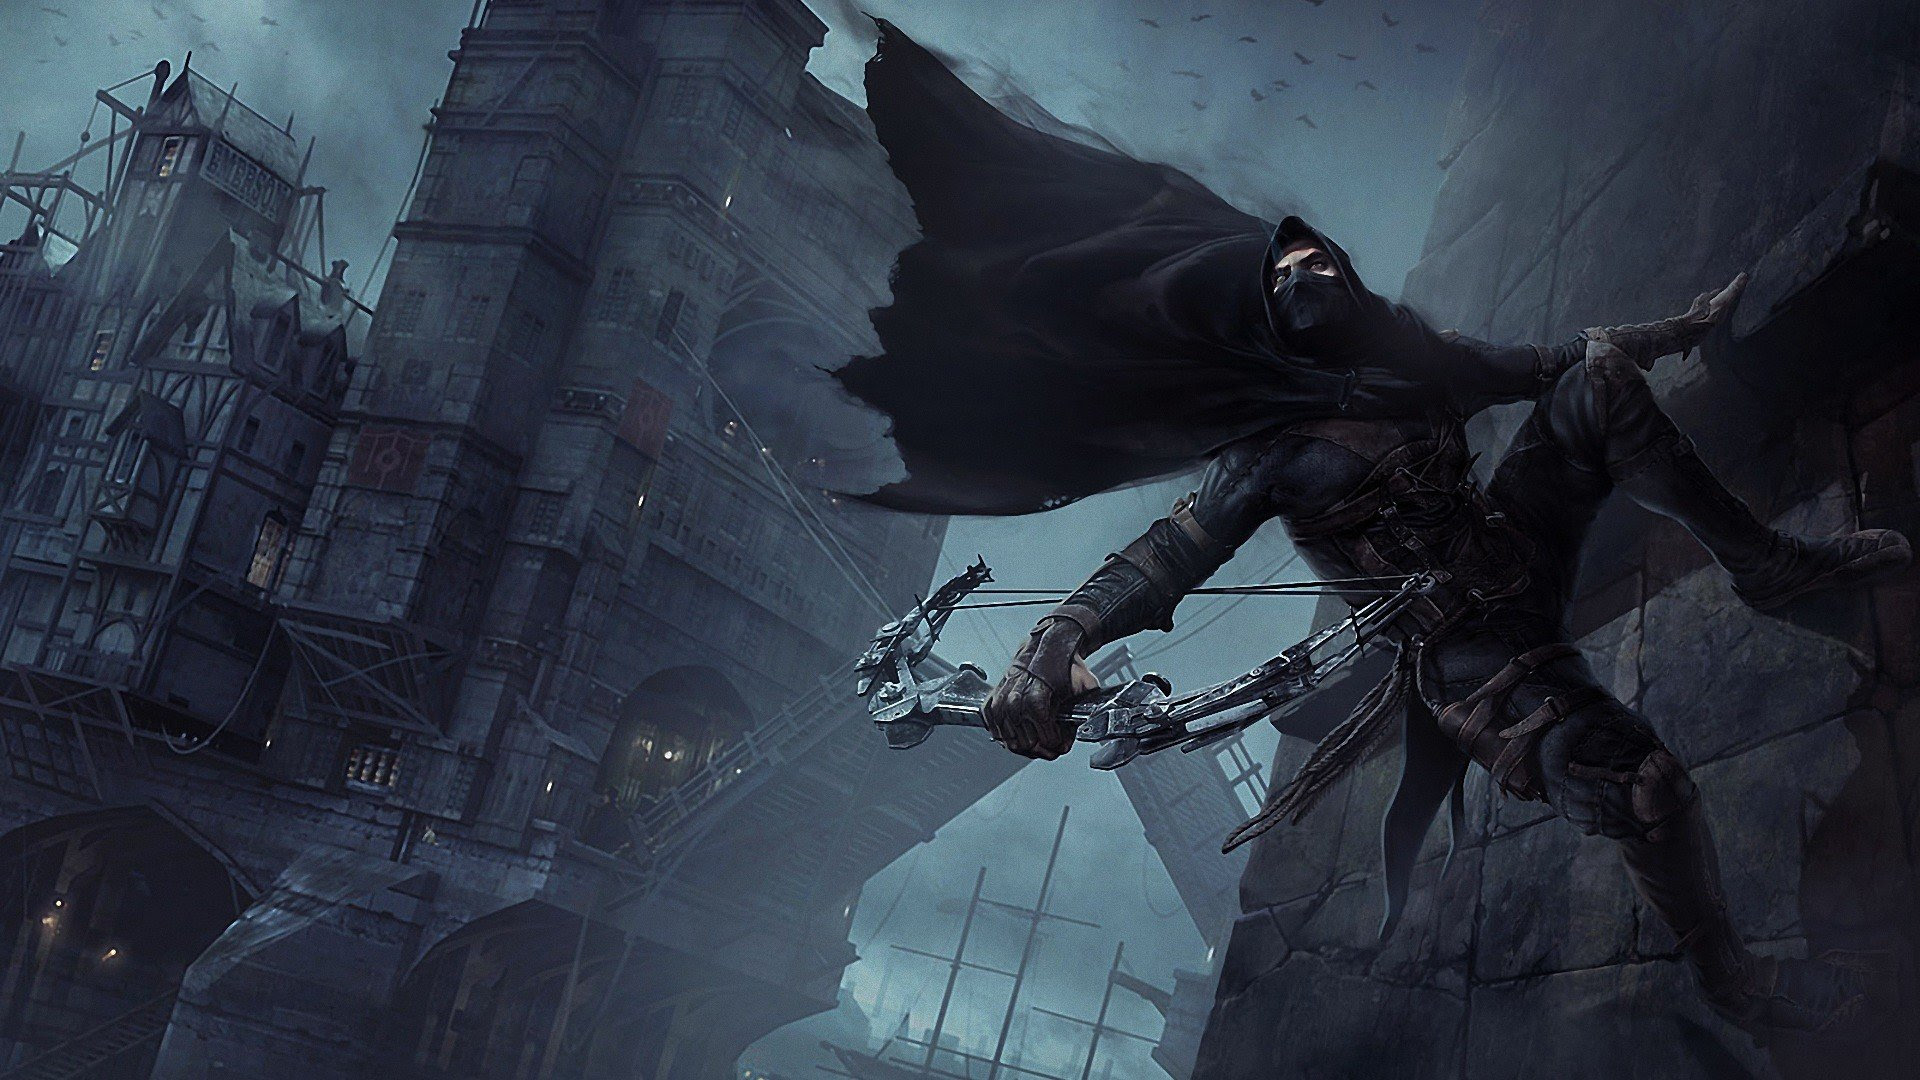 A new Thief game is reportedly in production screenshot